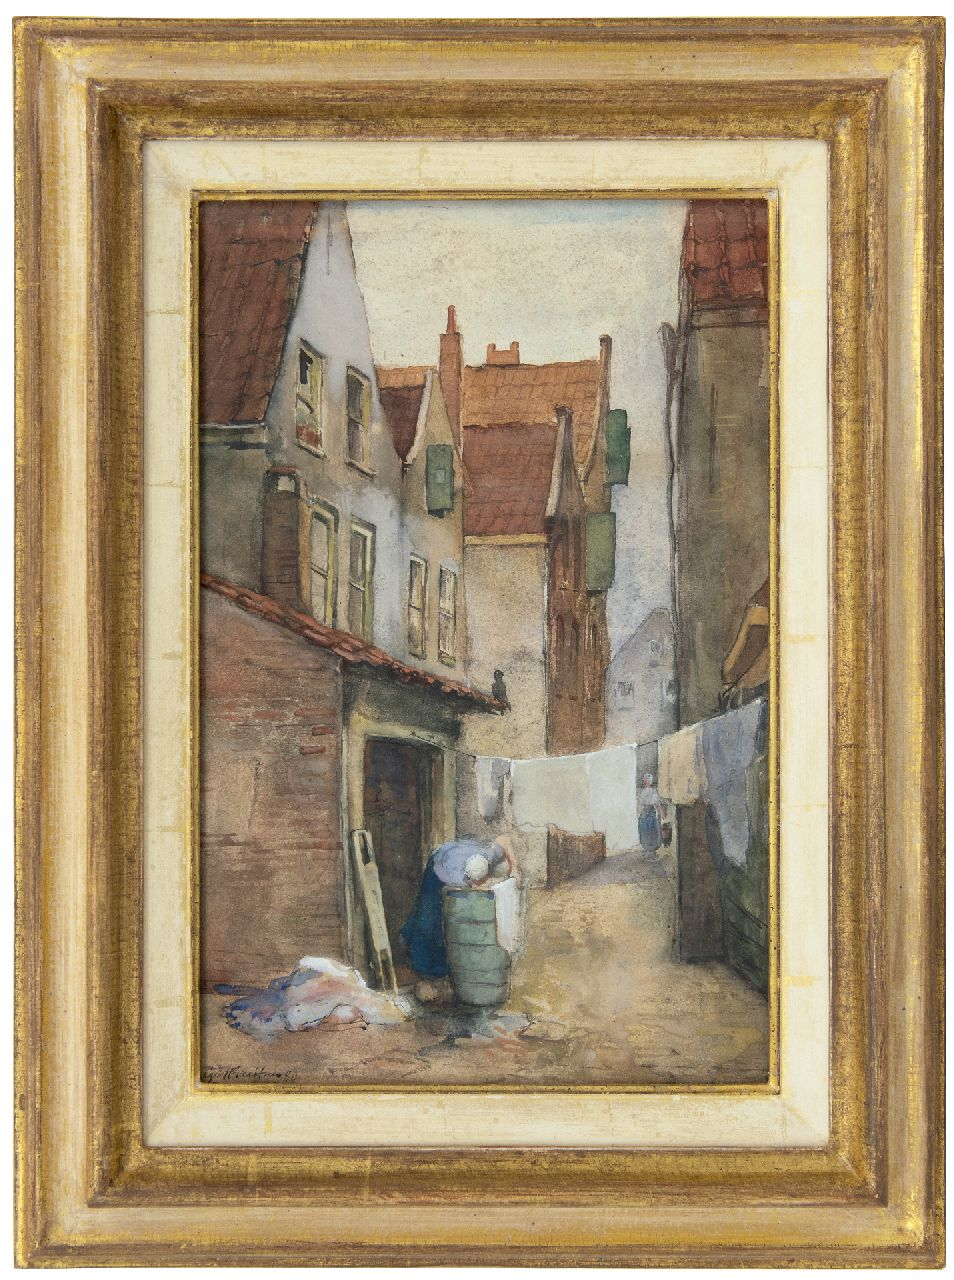 Breitner G.H.  | George Hendrik Breitner | Watercolours and drawings offered for sale | Alley in Rotterdam with laundress, watercolour on paper 39.1 x 25.7 cm, signed l.l. and dated '80